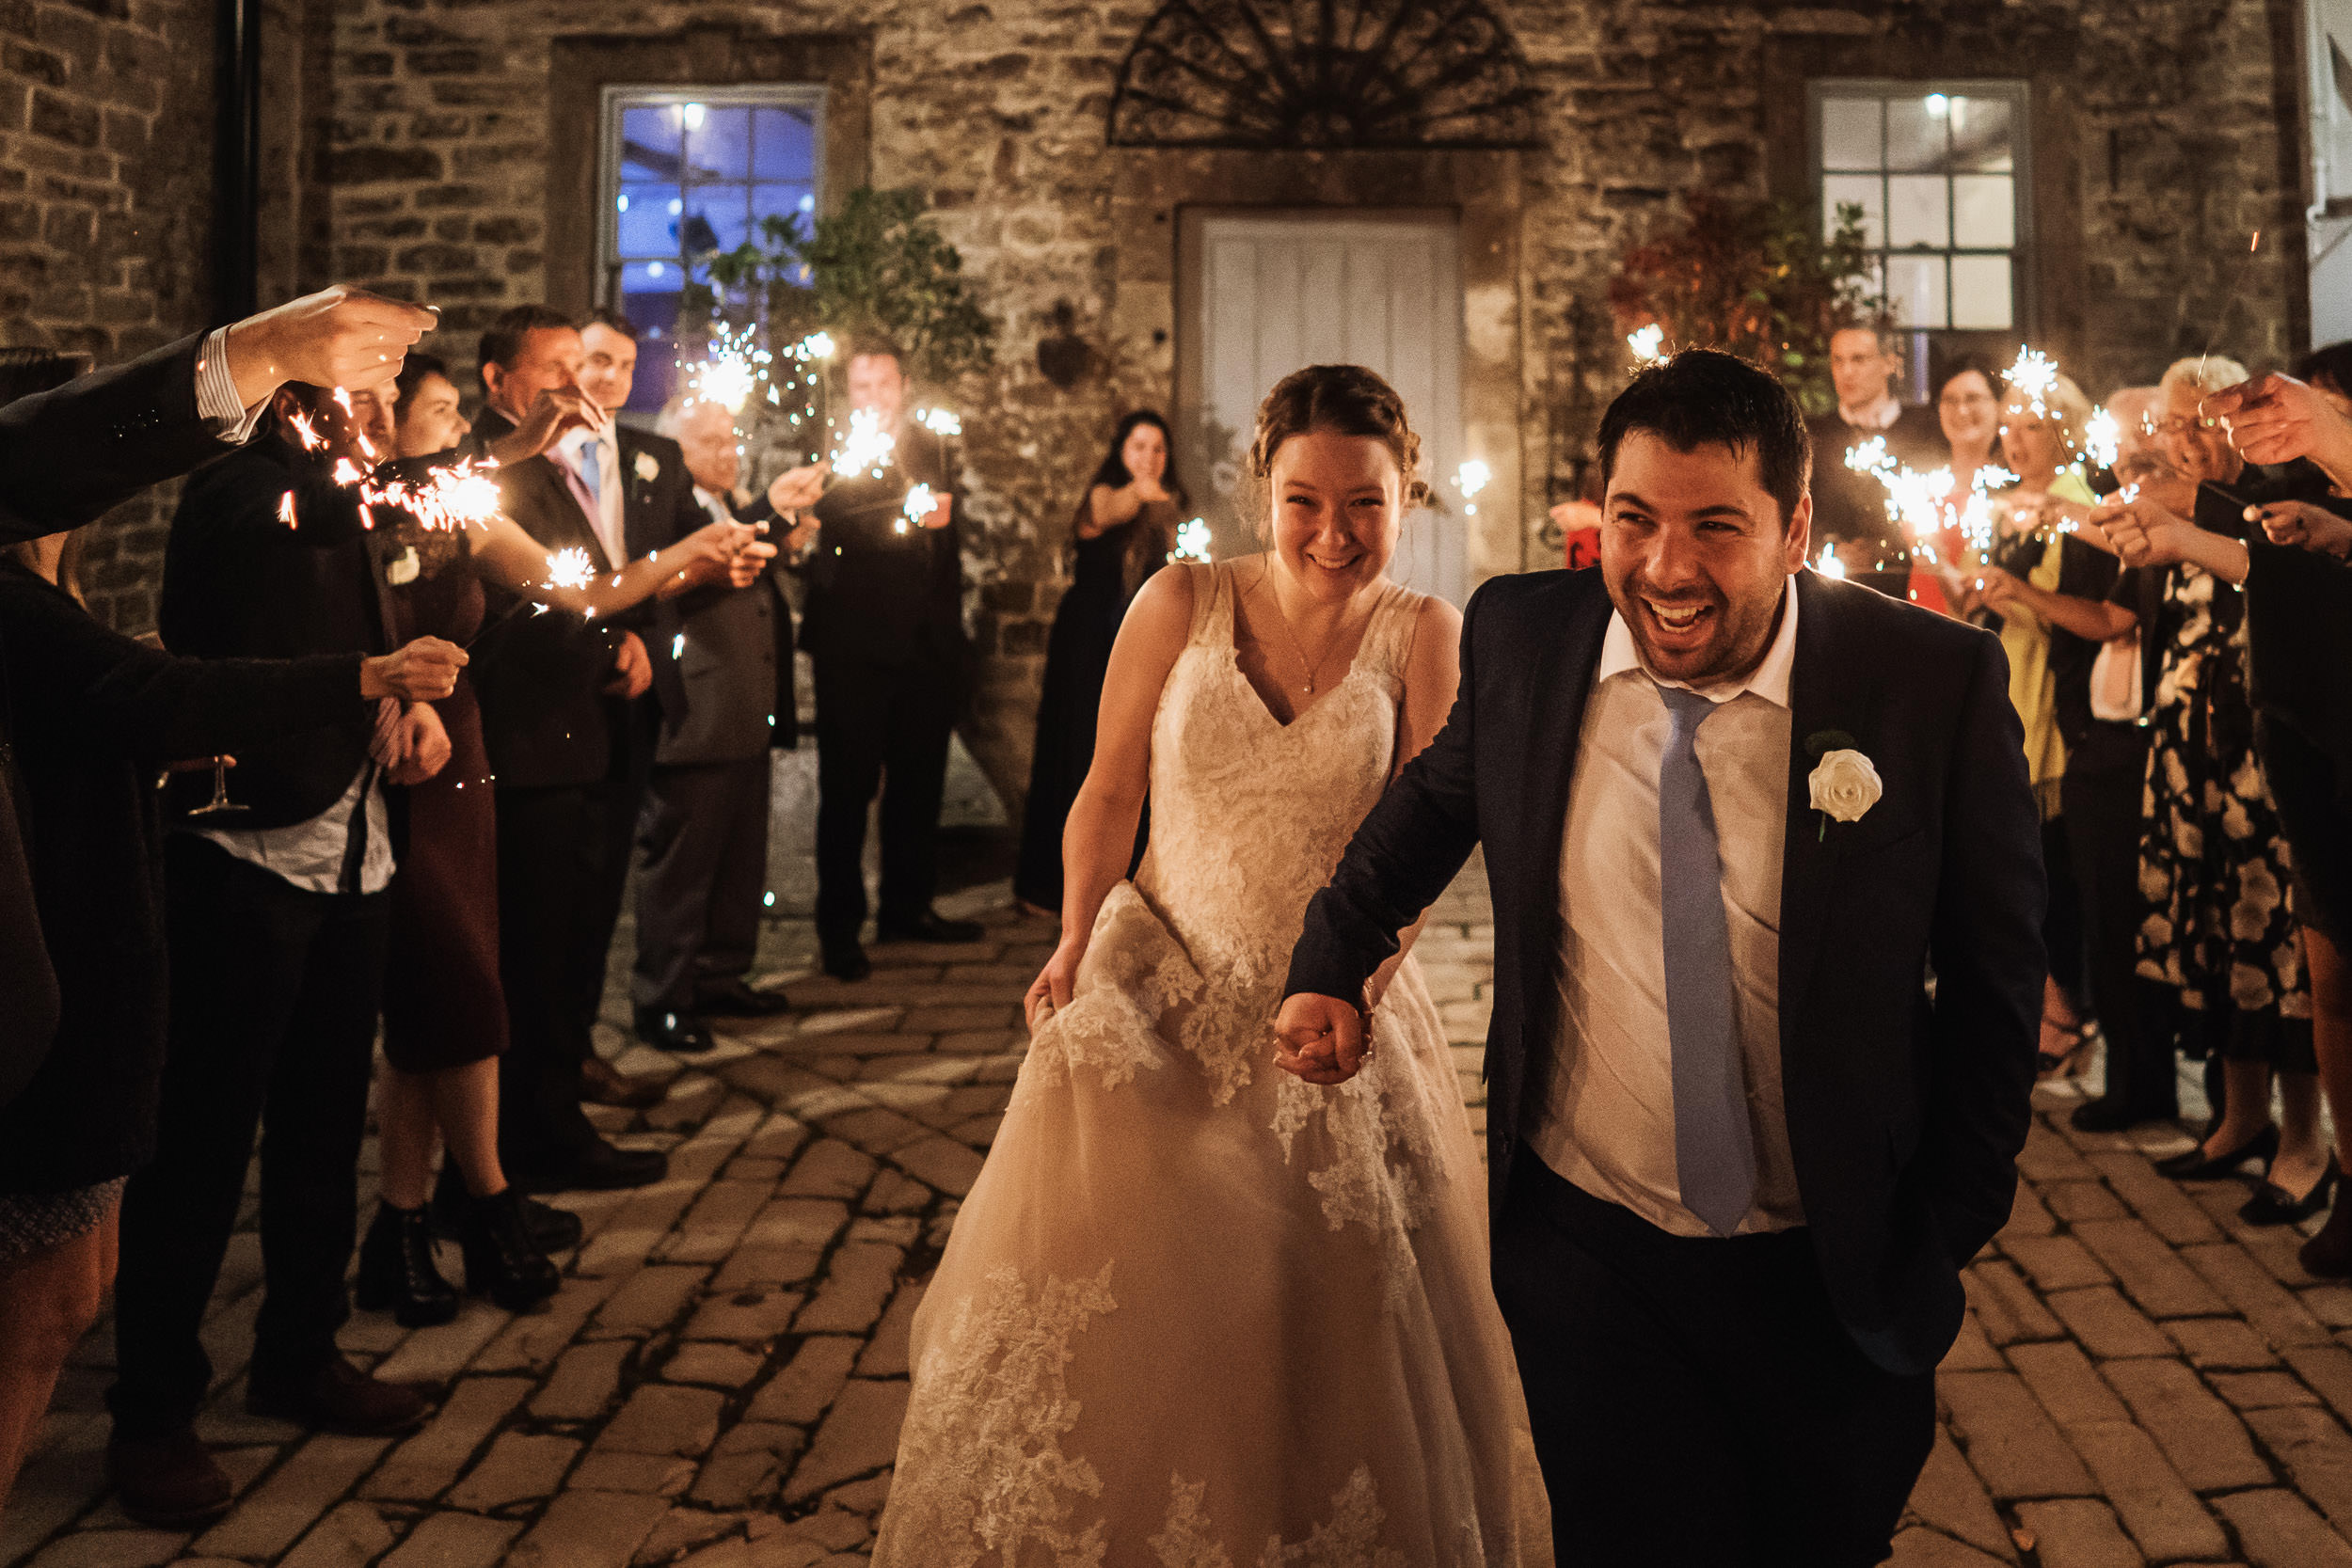 Pennard House Wedding - Bride and Groom Sparkler Exit